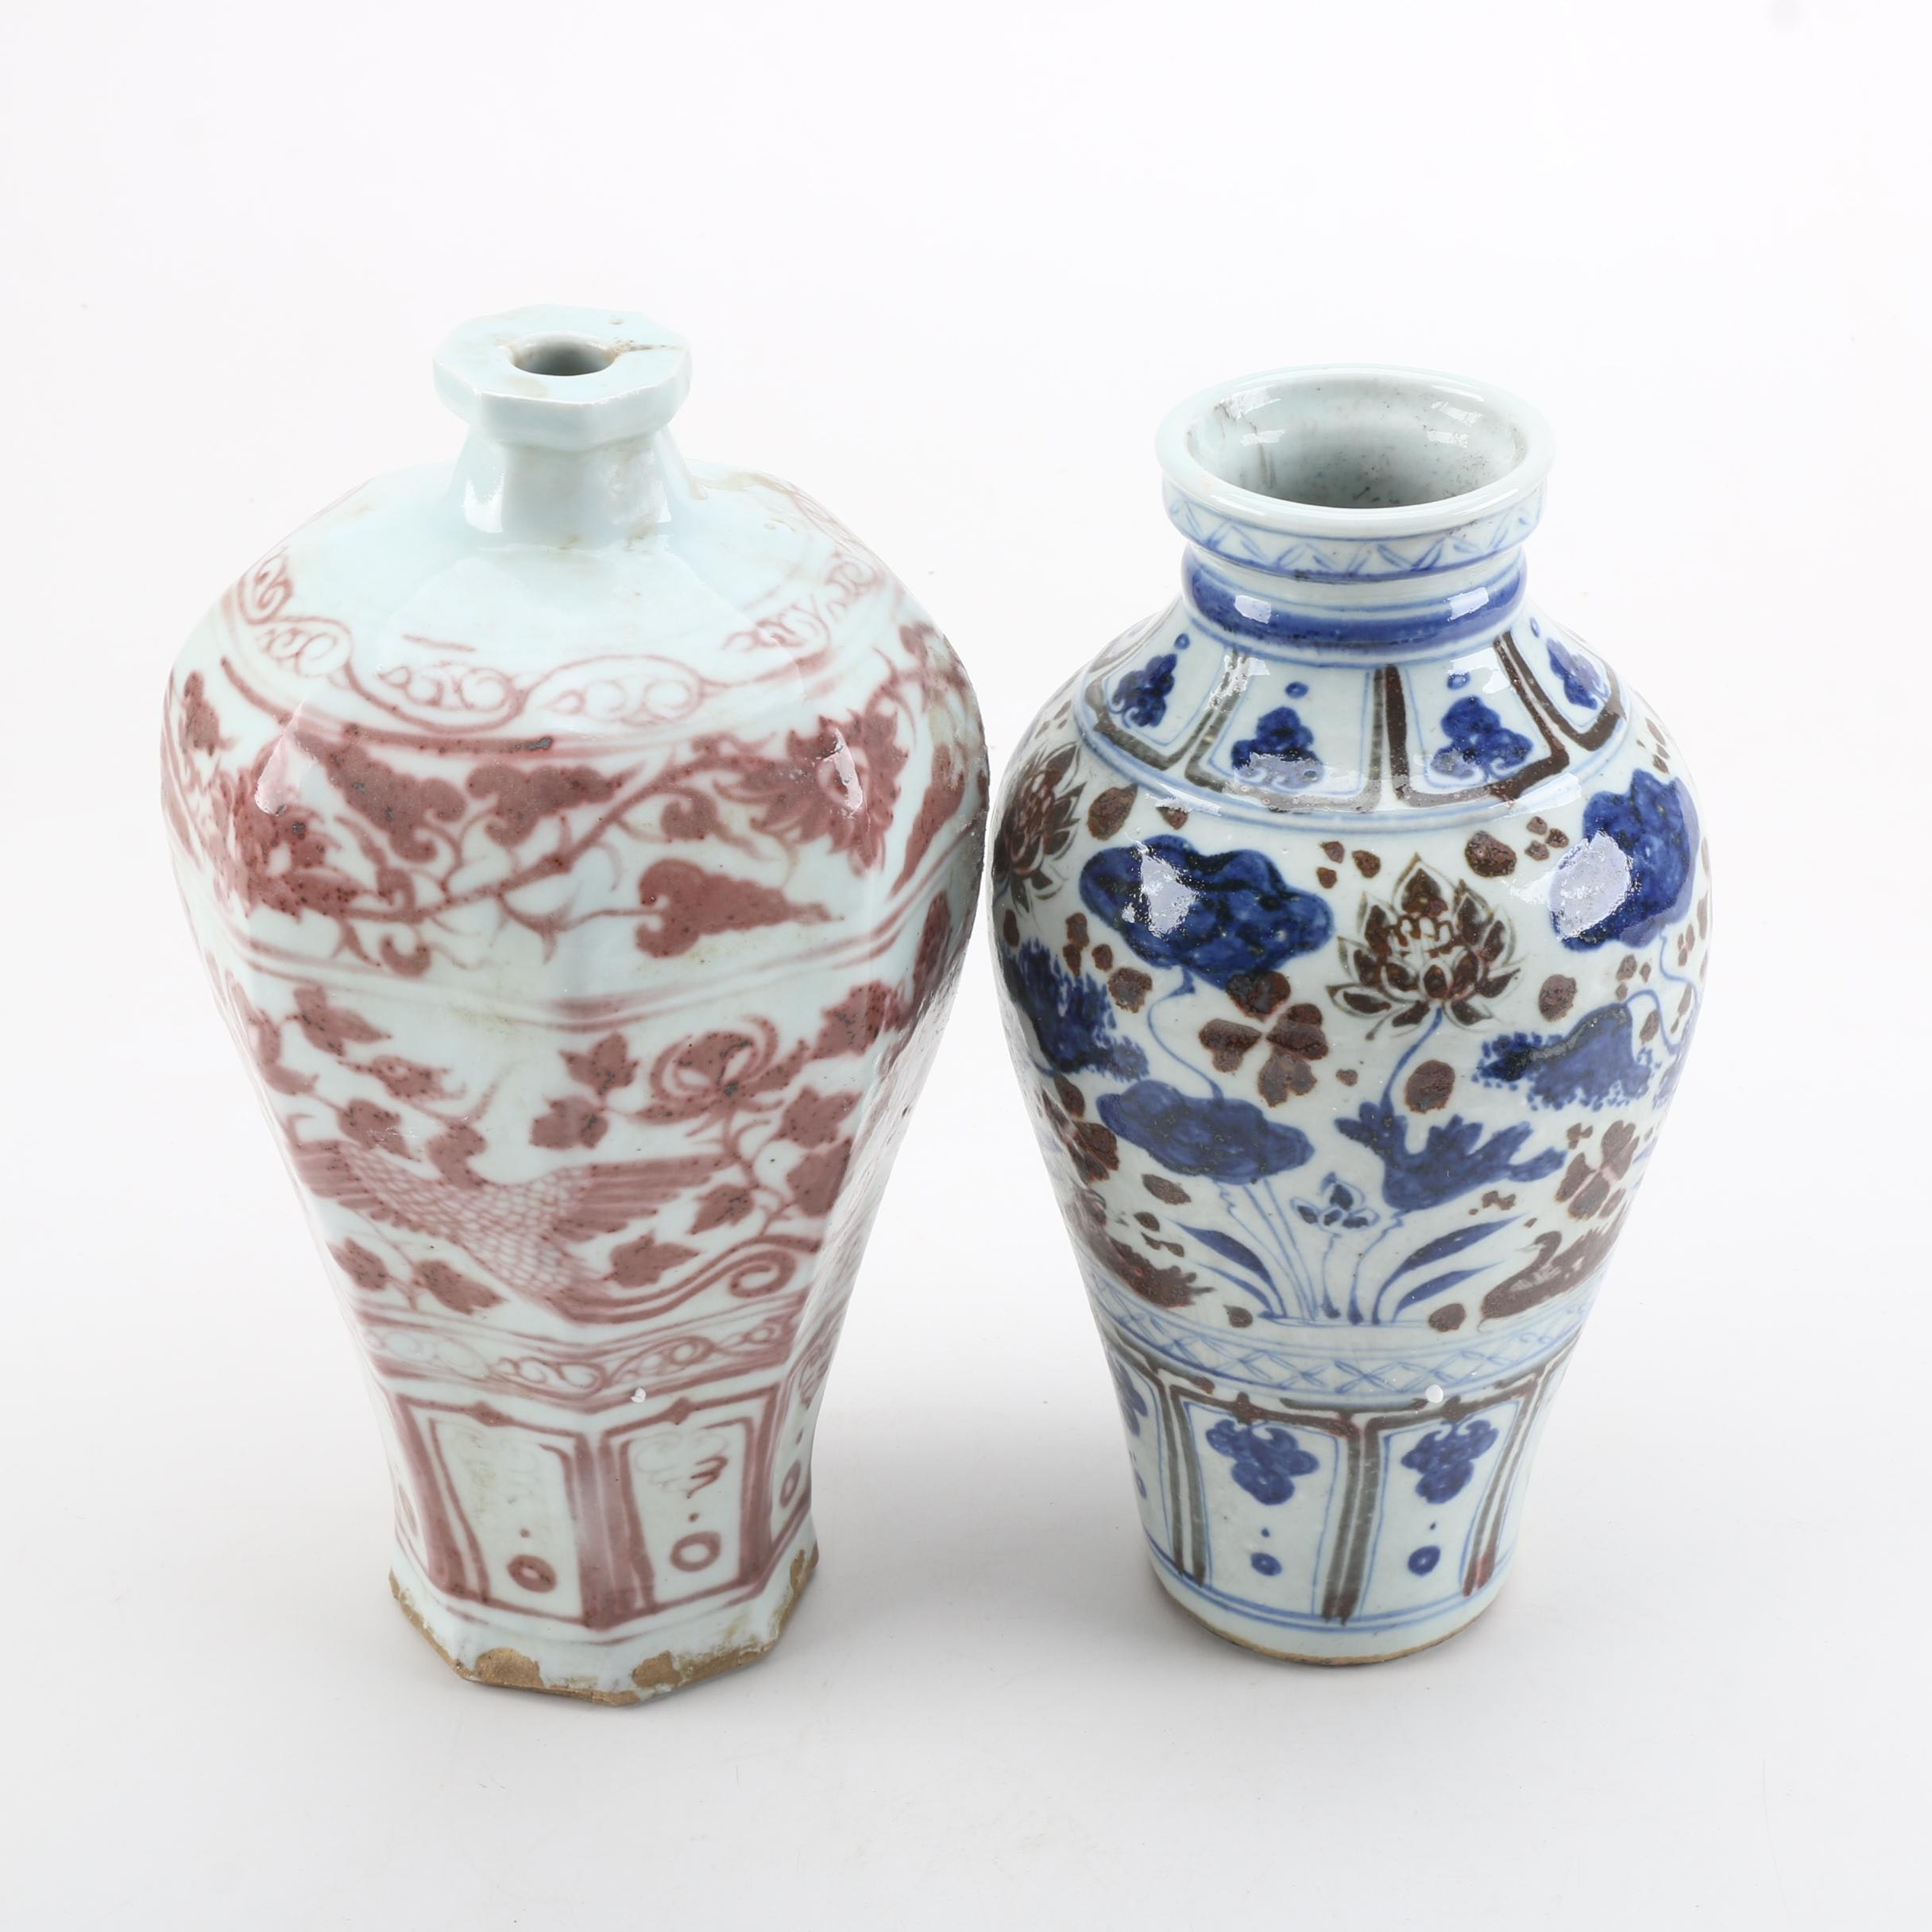 Ceramic Trasferware Vases